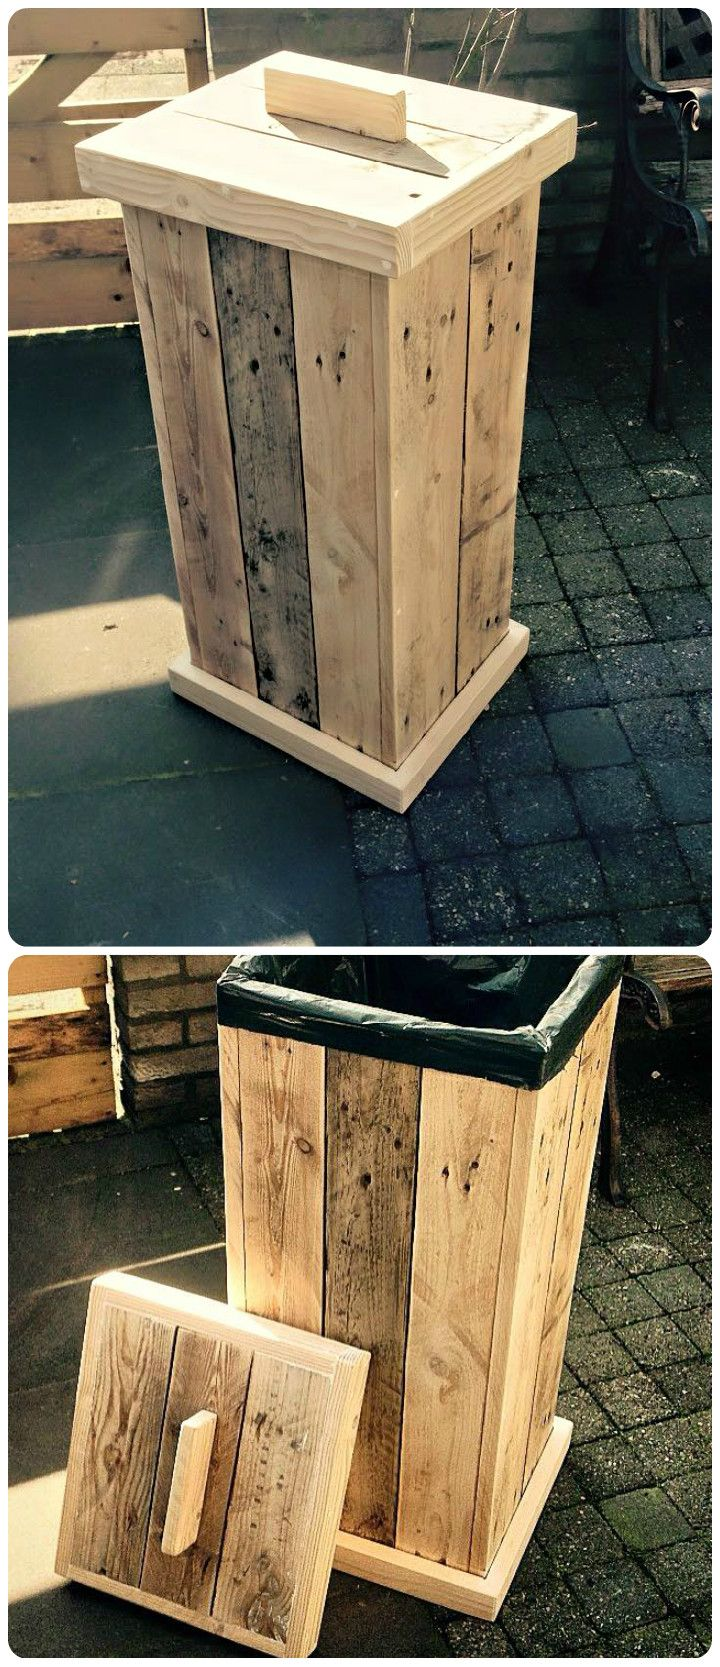 Cuisine En Palette Pallet Kitchen Garbage Jardin Terrasse Diy Wood Projects